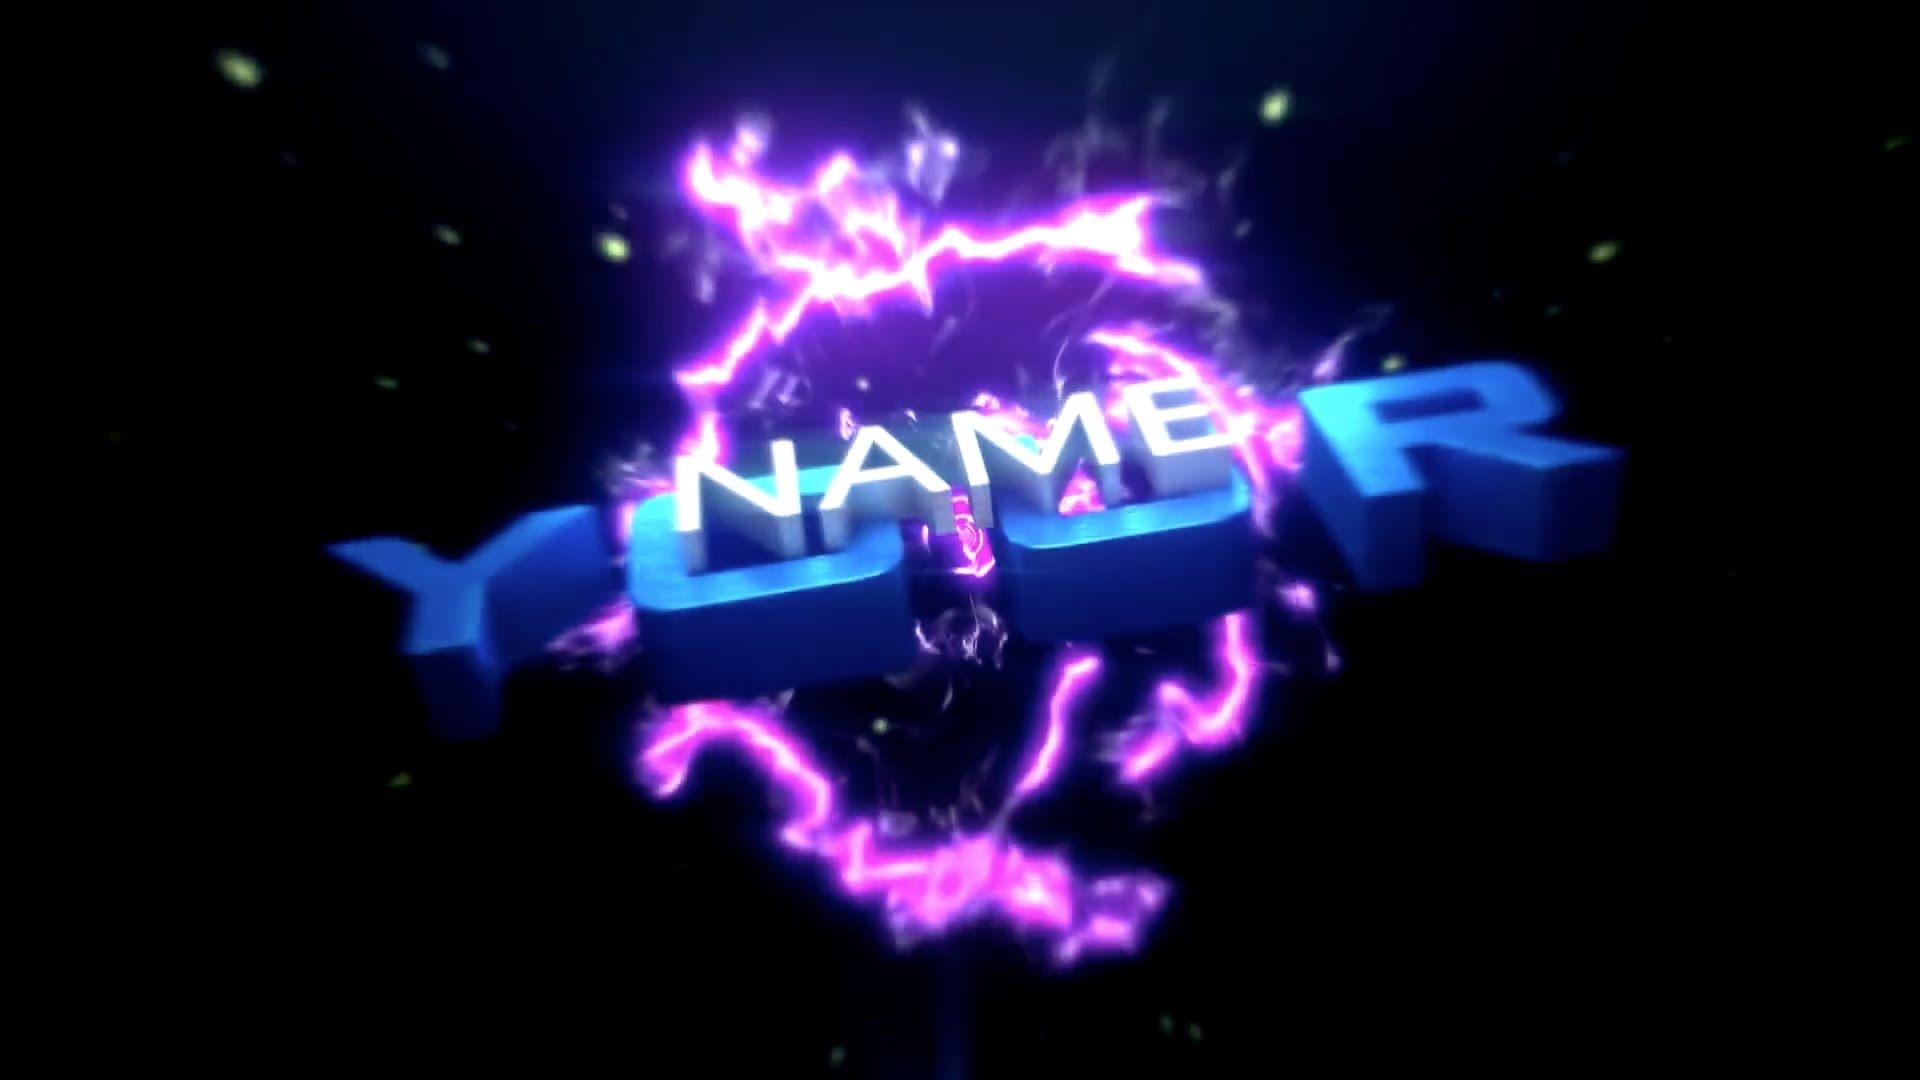 Top 10 FREE Intro Templates - Sony Vegas, After Effects, Cinema 4D ...